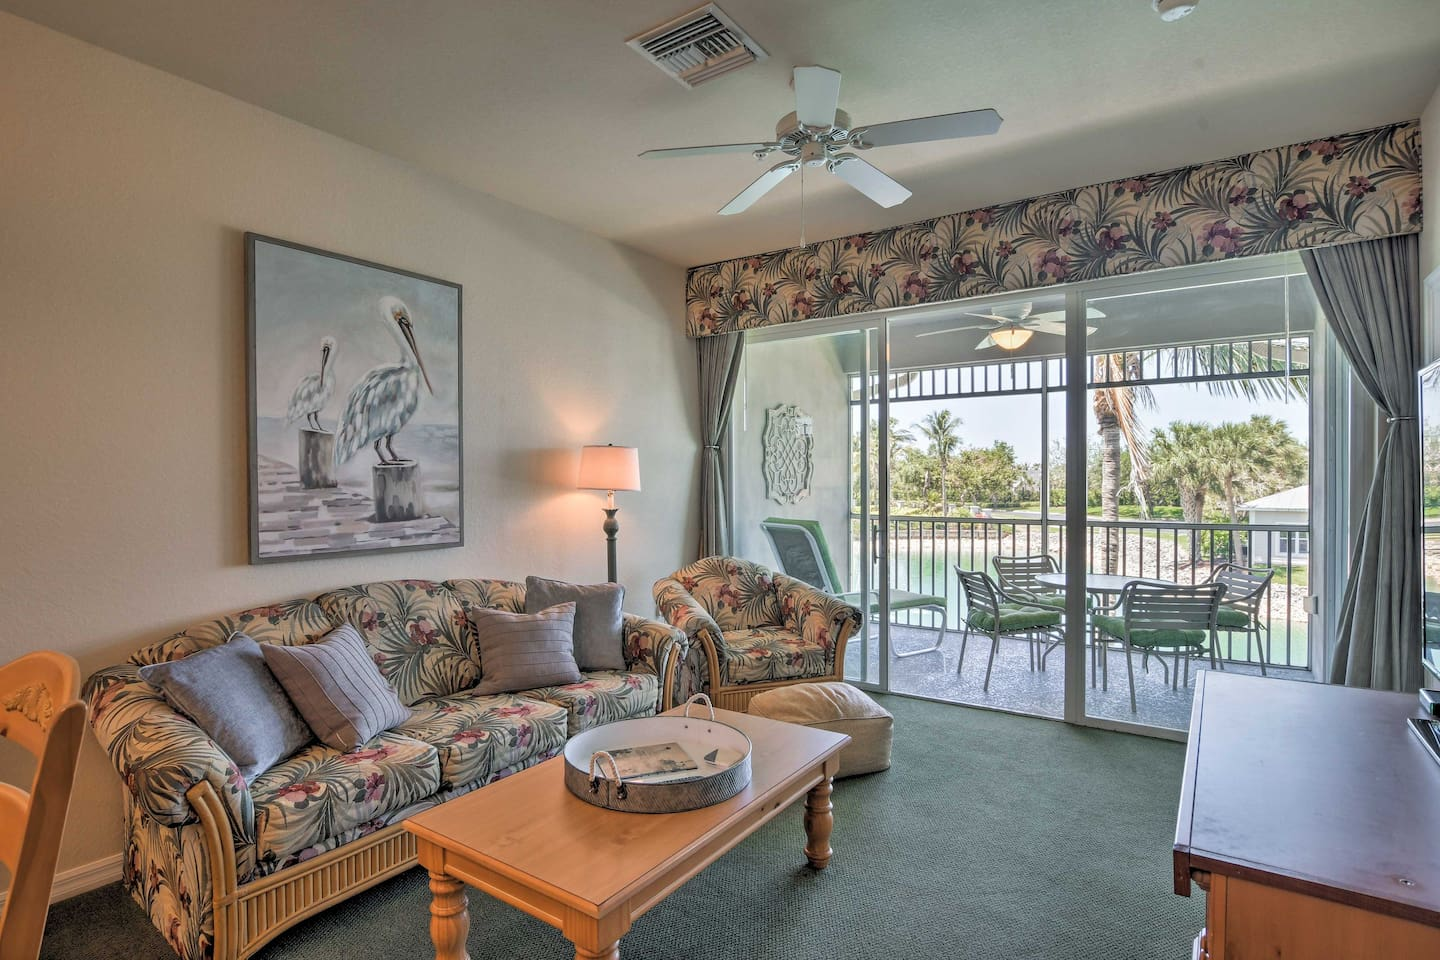 The condo boasts 1,540 square feet of clean, comfortable living space.